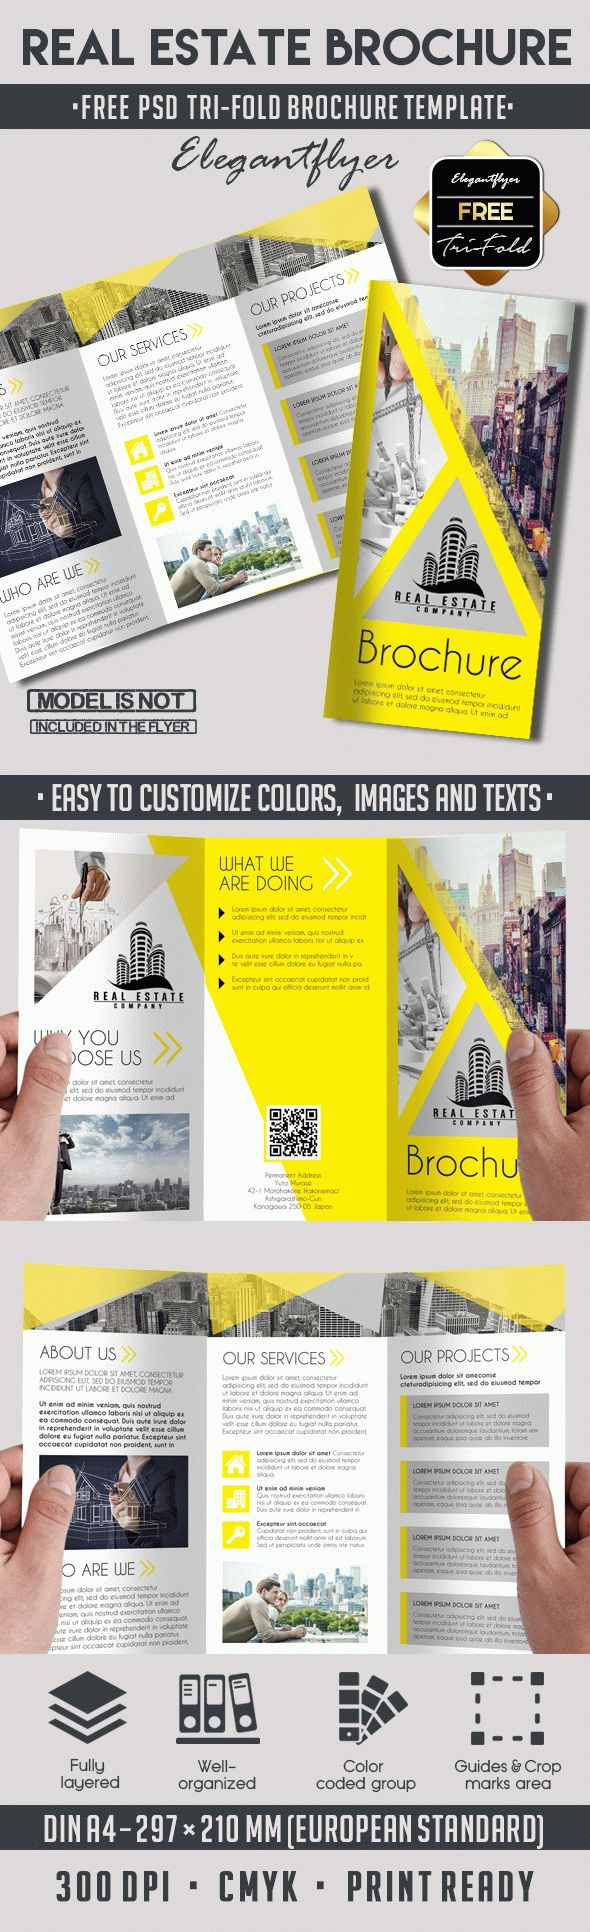 Real estate free tri fold psd brochure template by for Real estate prospectus template